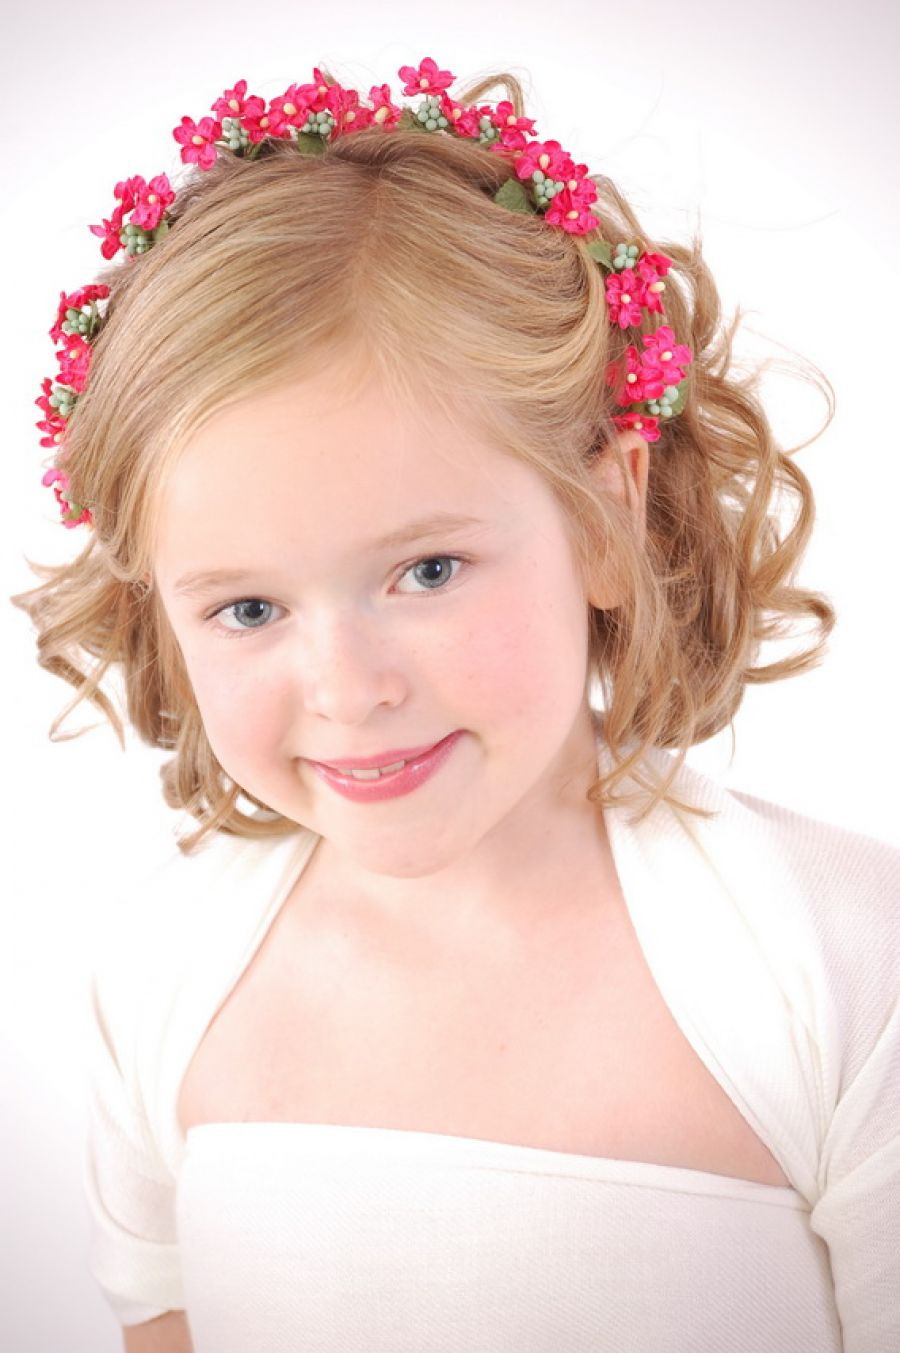 Kids Hairstyles For Girls  20 Hairstyles for Kids with MagMent